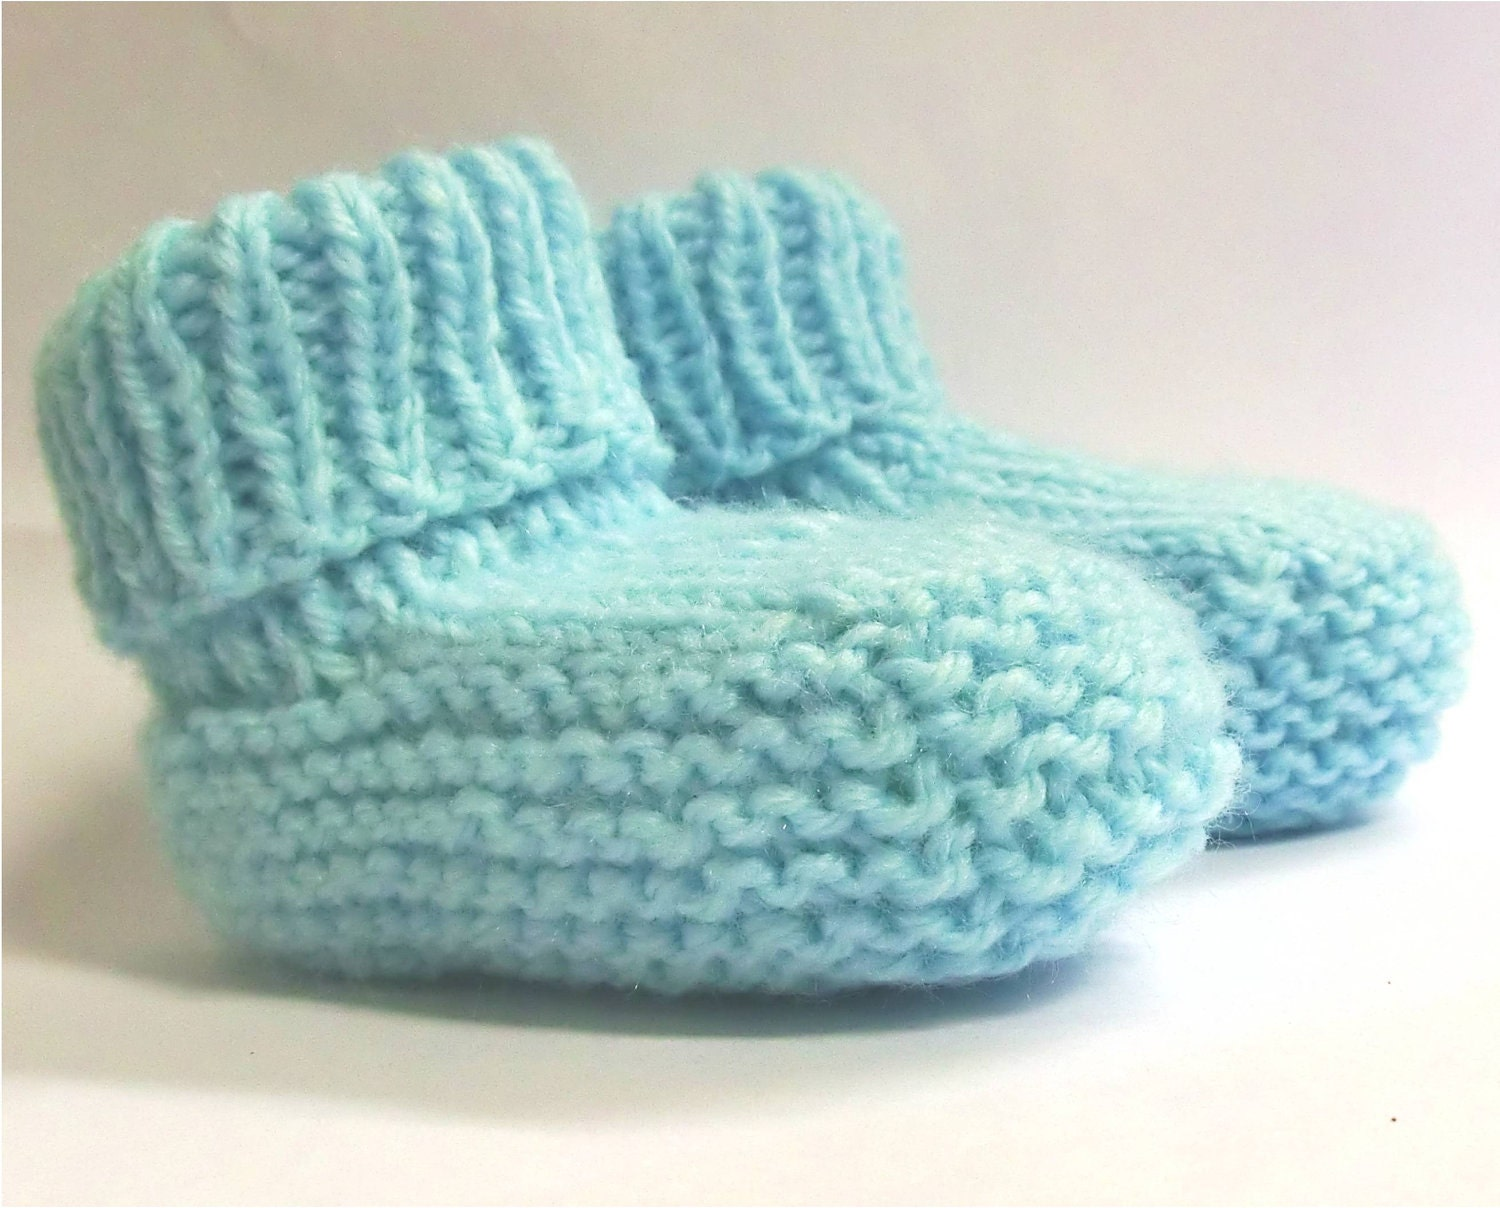 Knitting Patterns For Baby Booties Beginner : Baby Booties Knitting Pattern PDF Instant Download